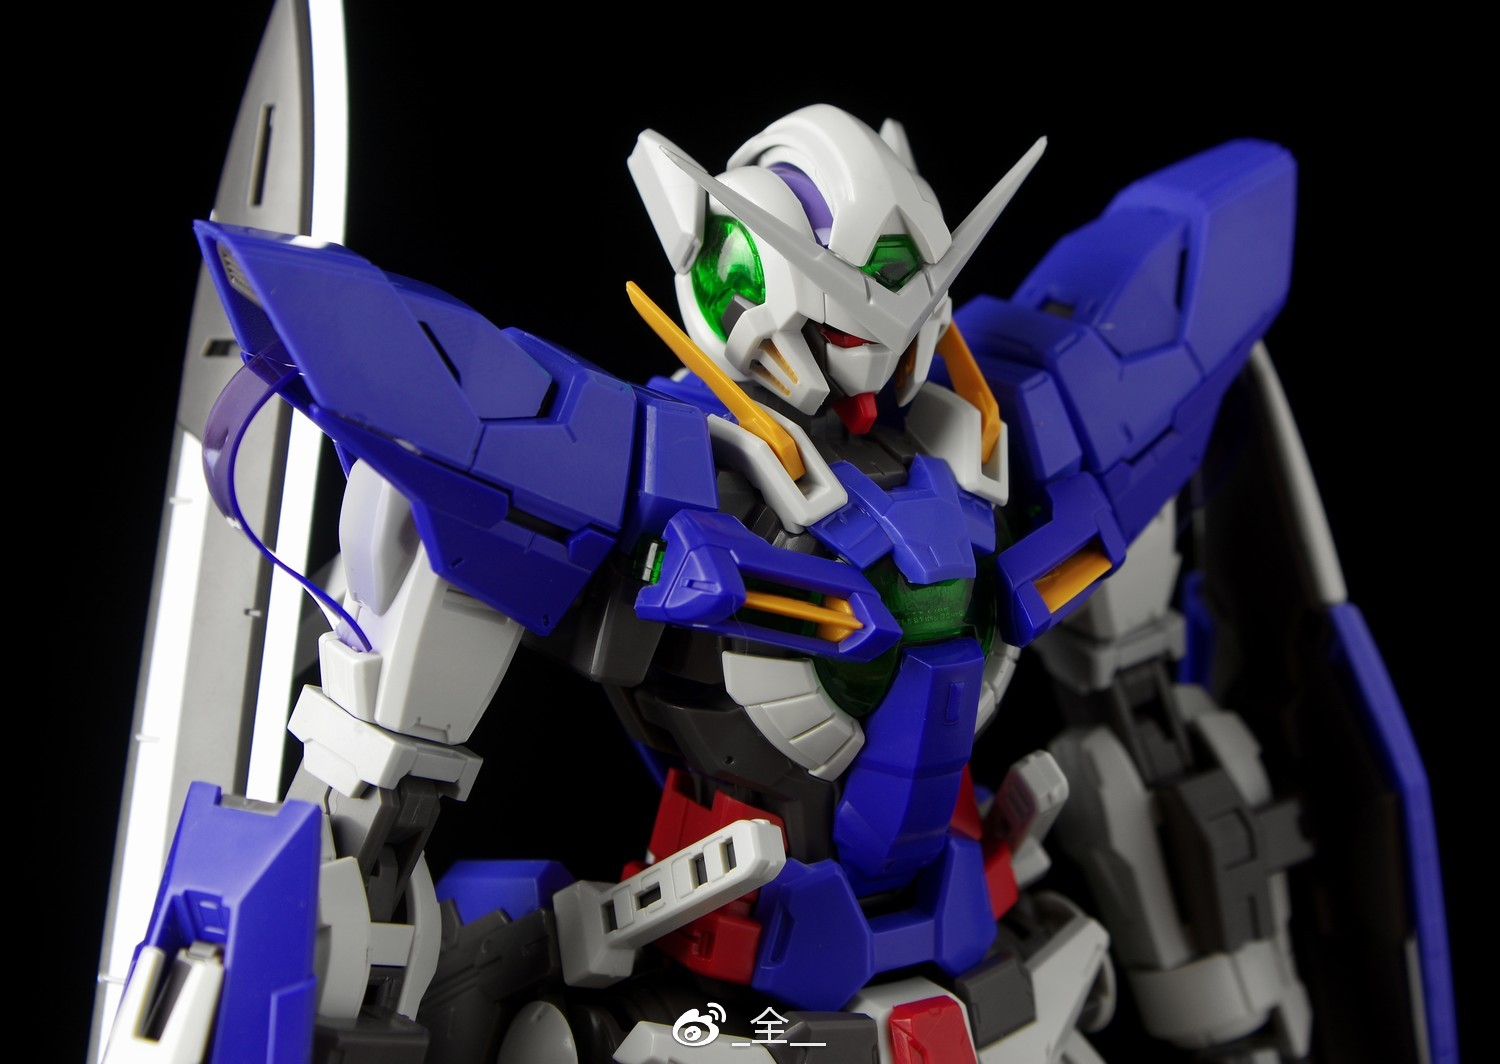 S269_mg_exia_led_hobby_star_inask_070.jpg